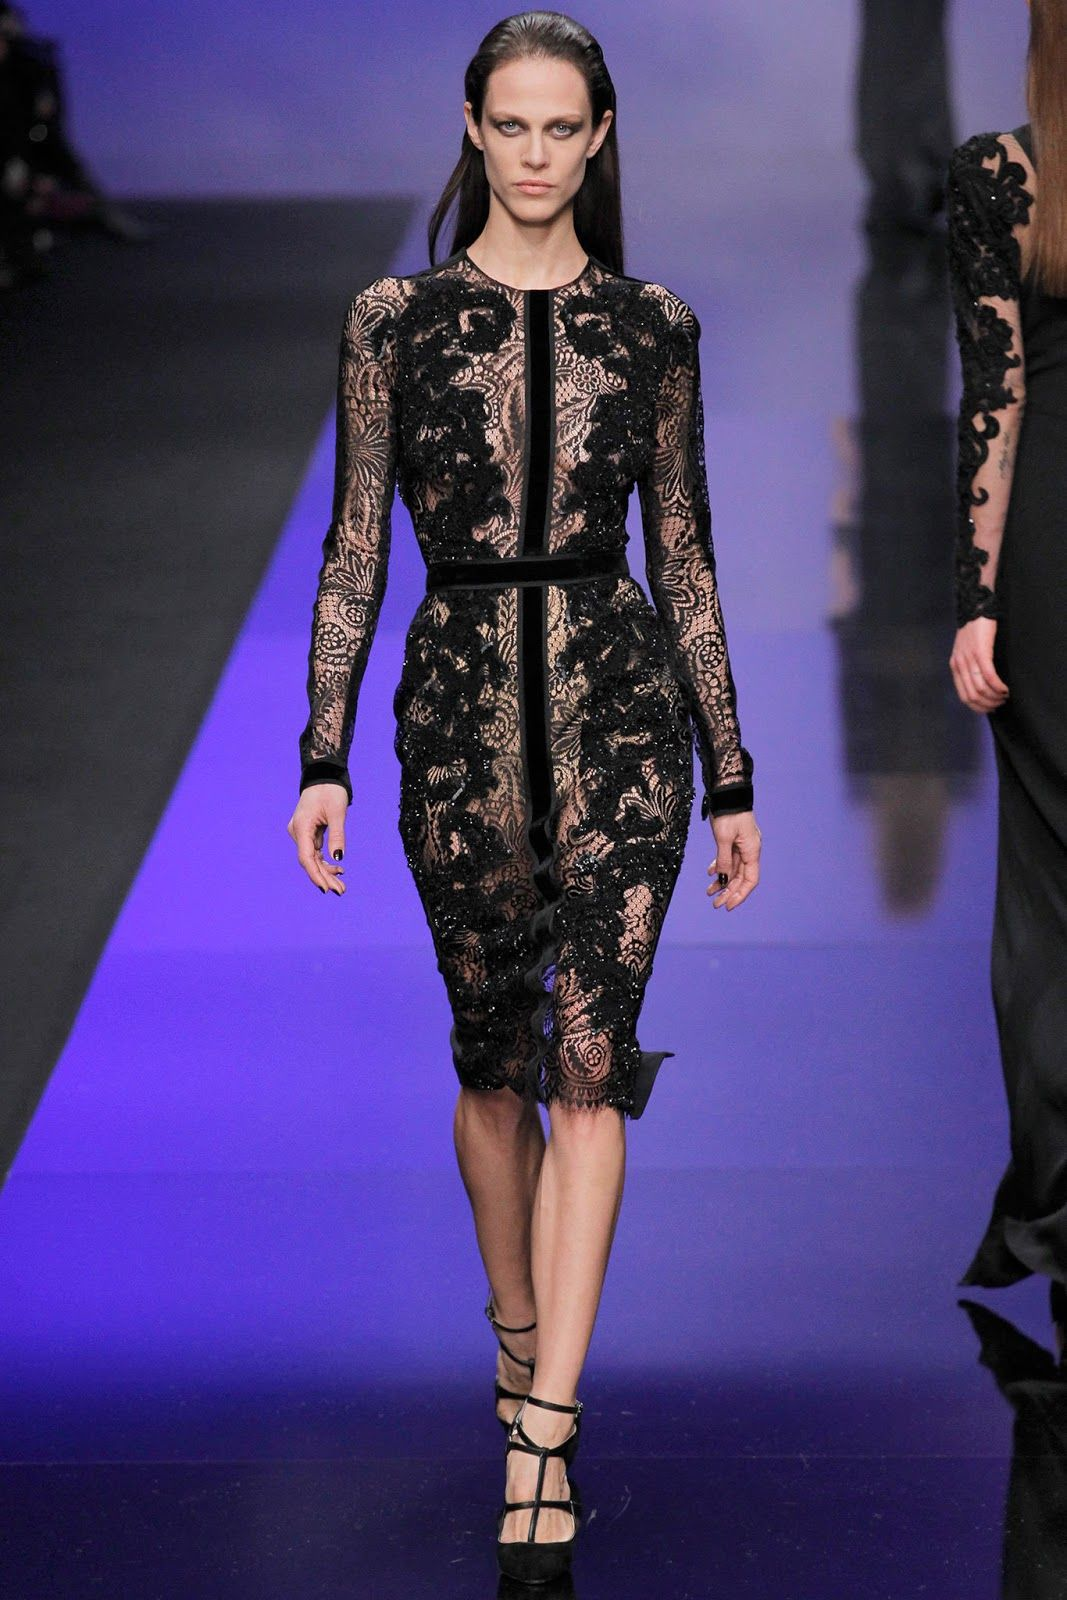 Elie Saab Fall Winter 2013 Collection Paris Fashion